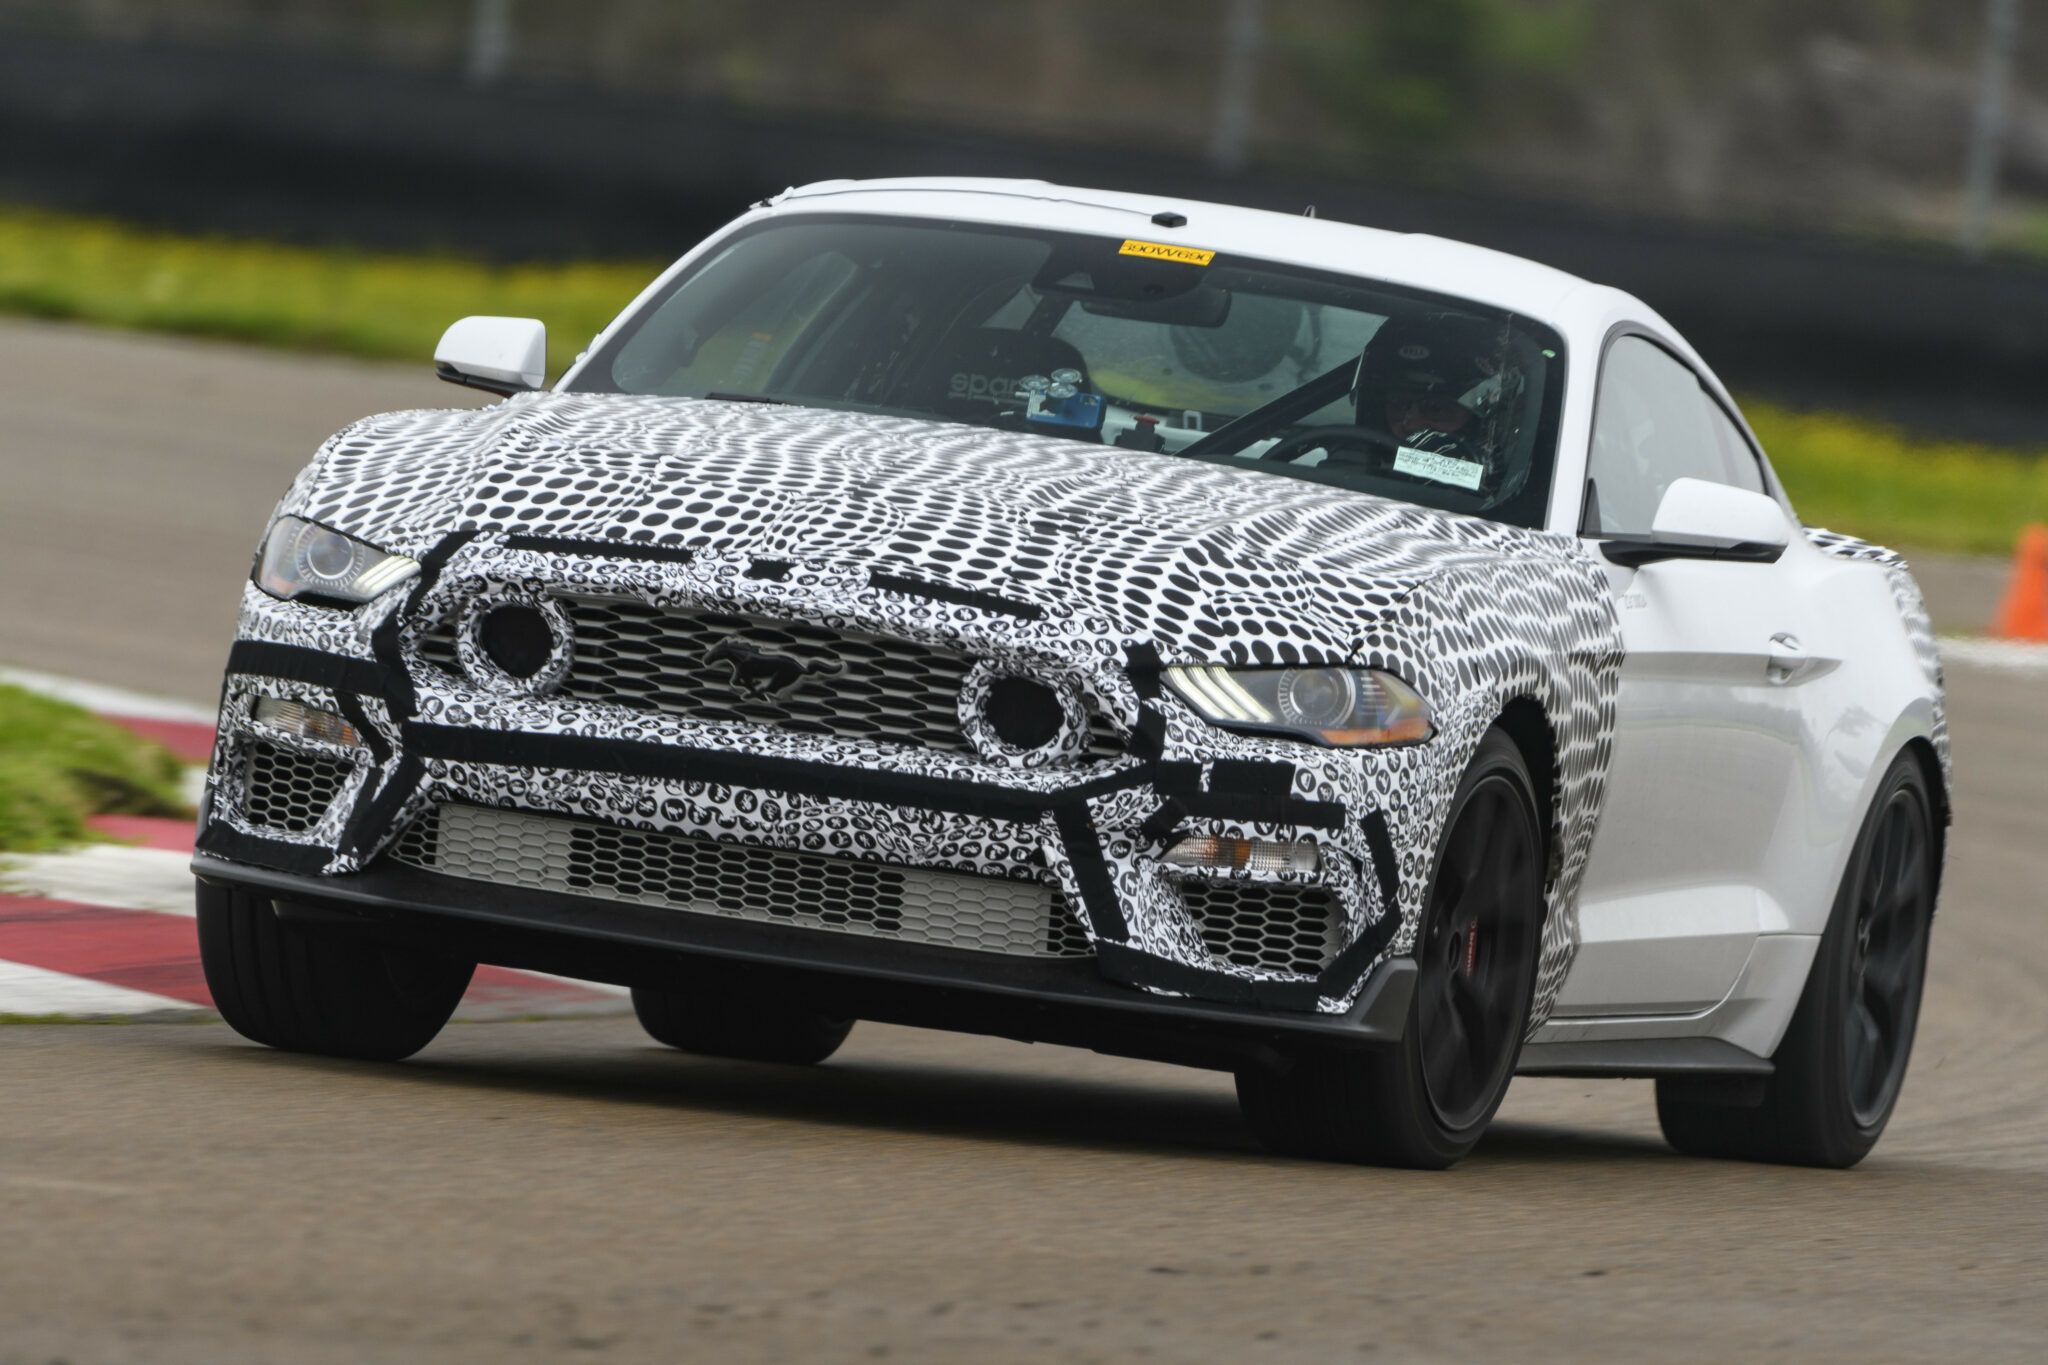 2022 Ford Mustang Images